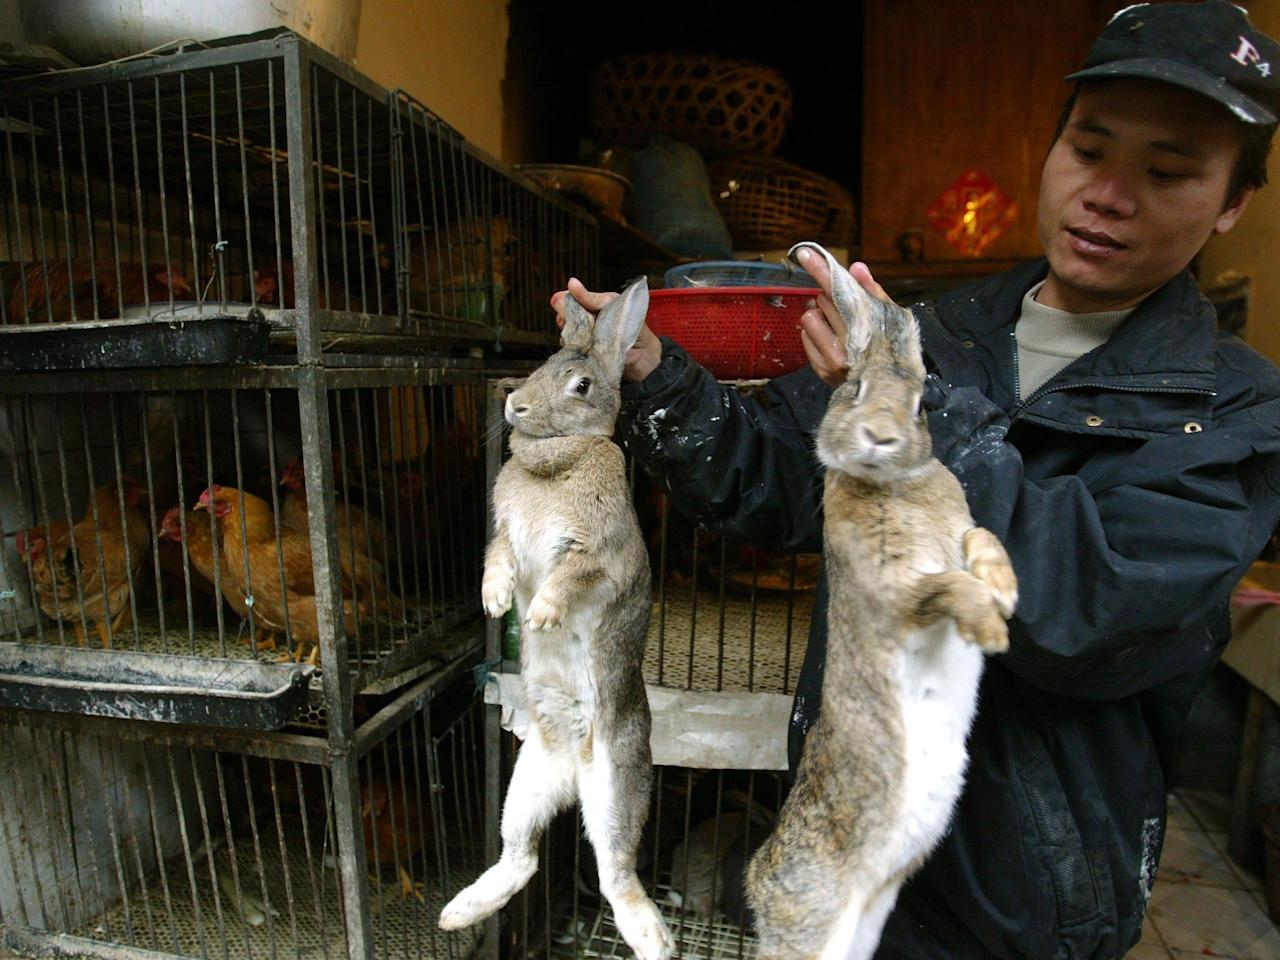 Wuhan has banned eating wild animals and nearby provinces are offering farmers cash to stop breeding exotic livestock